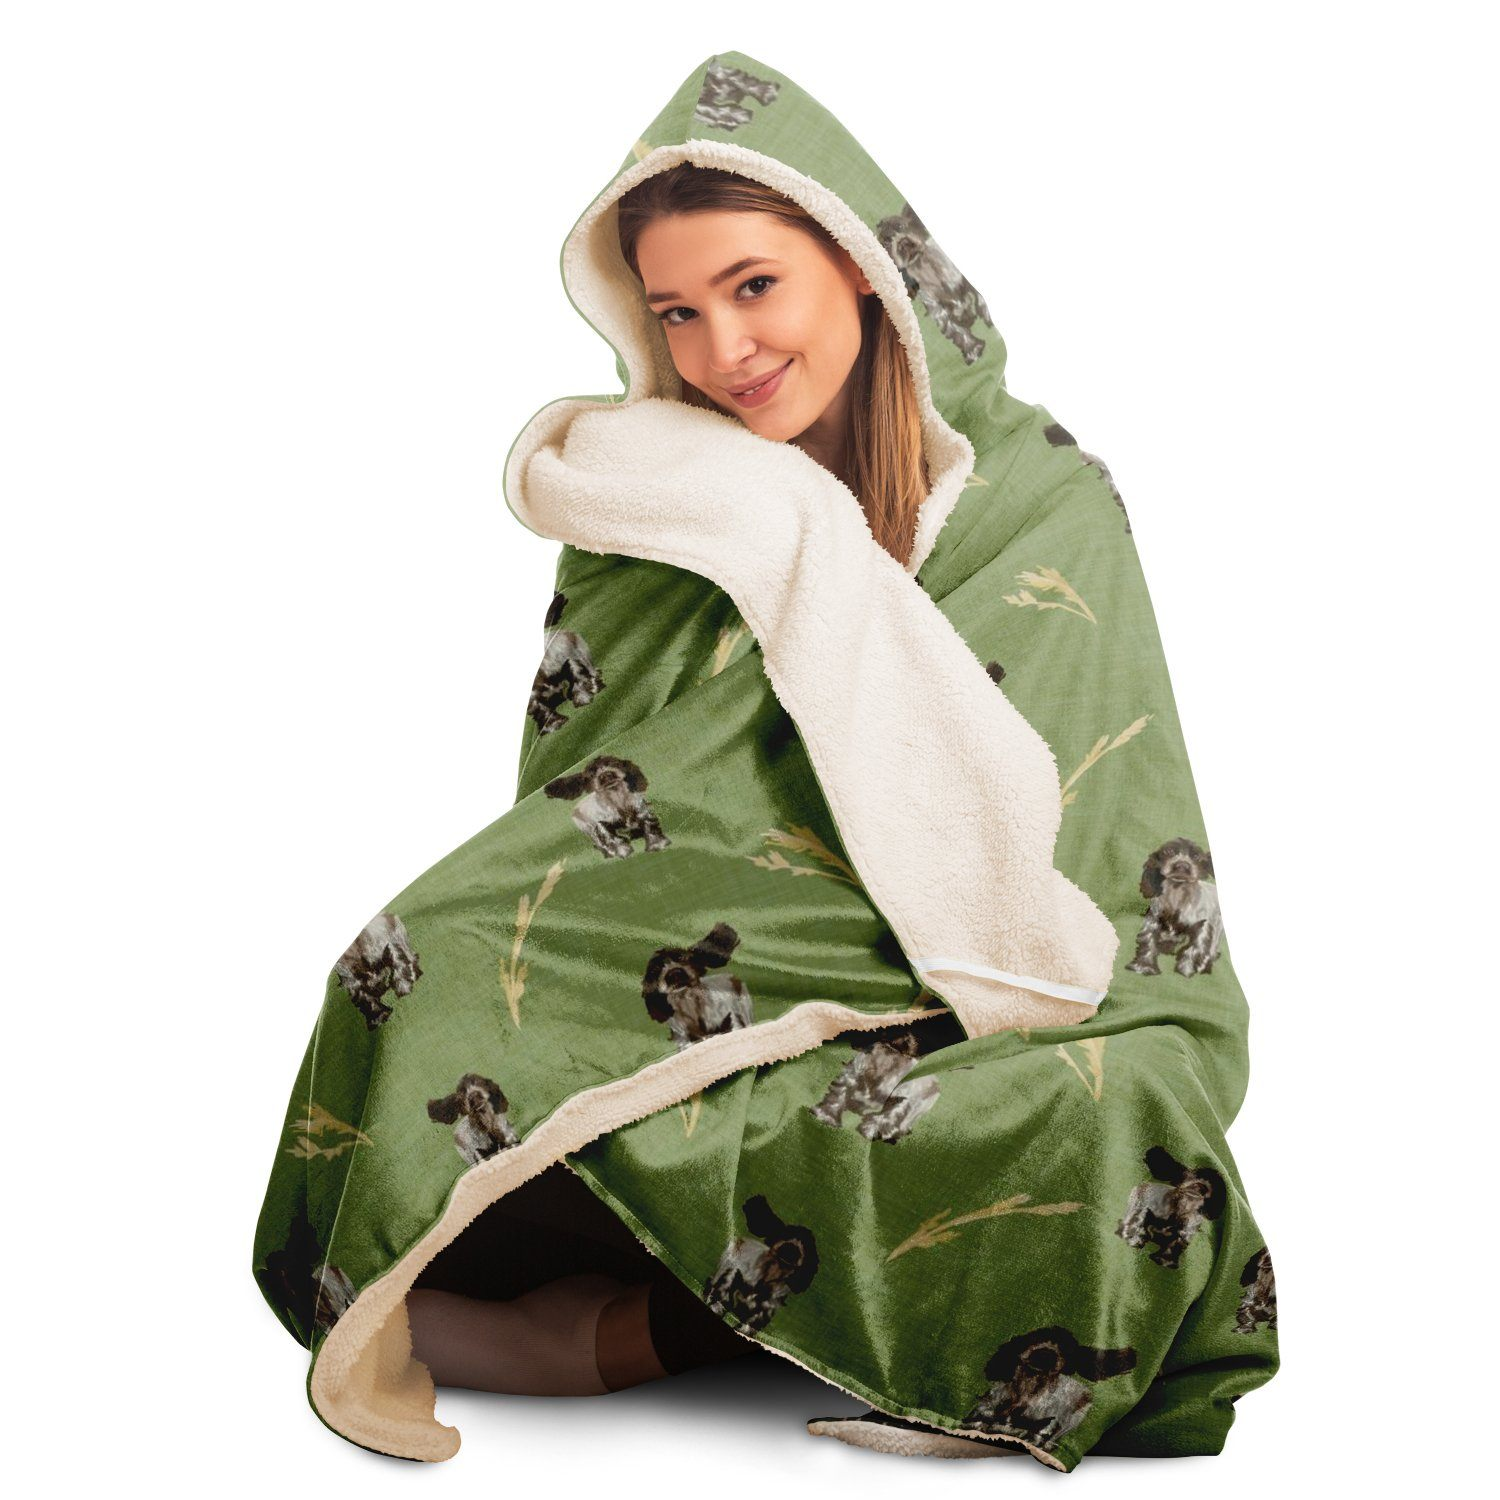 Spaniels - Hooded Blanket - Fair Dinkum Fashion